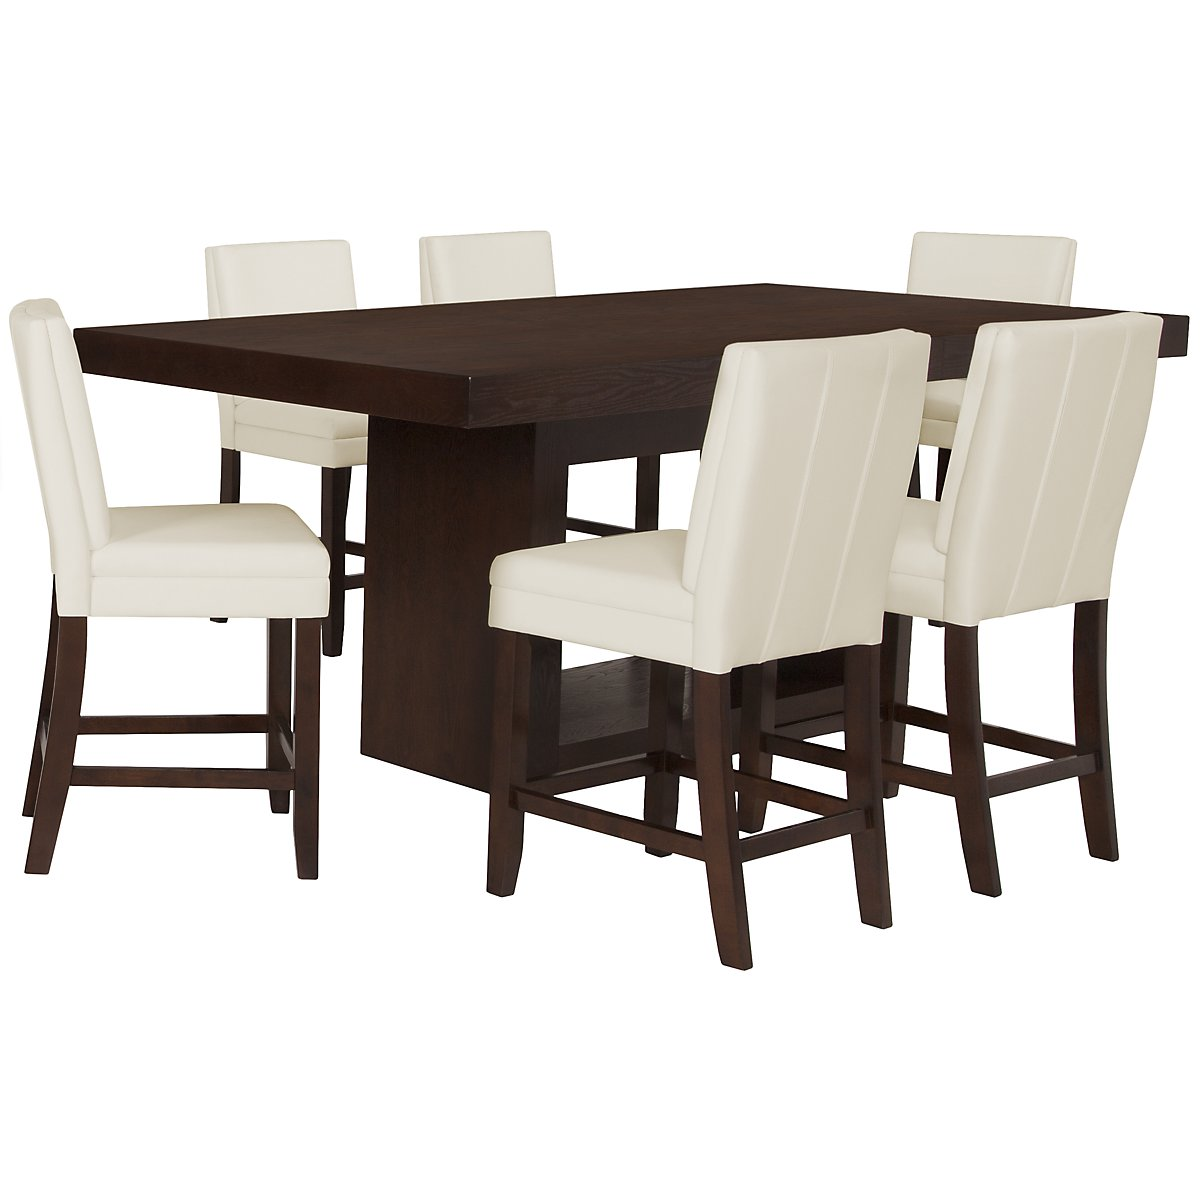 Antonio White High Table & 4 Bonded Barstools